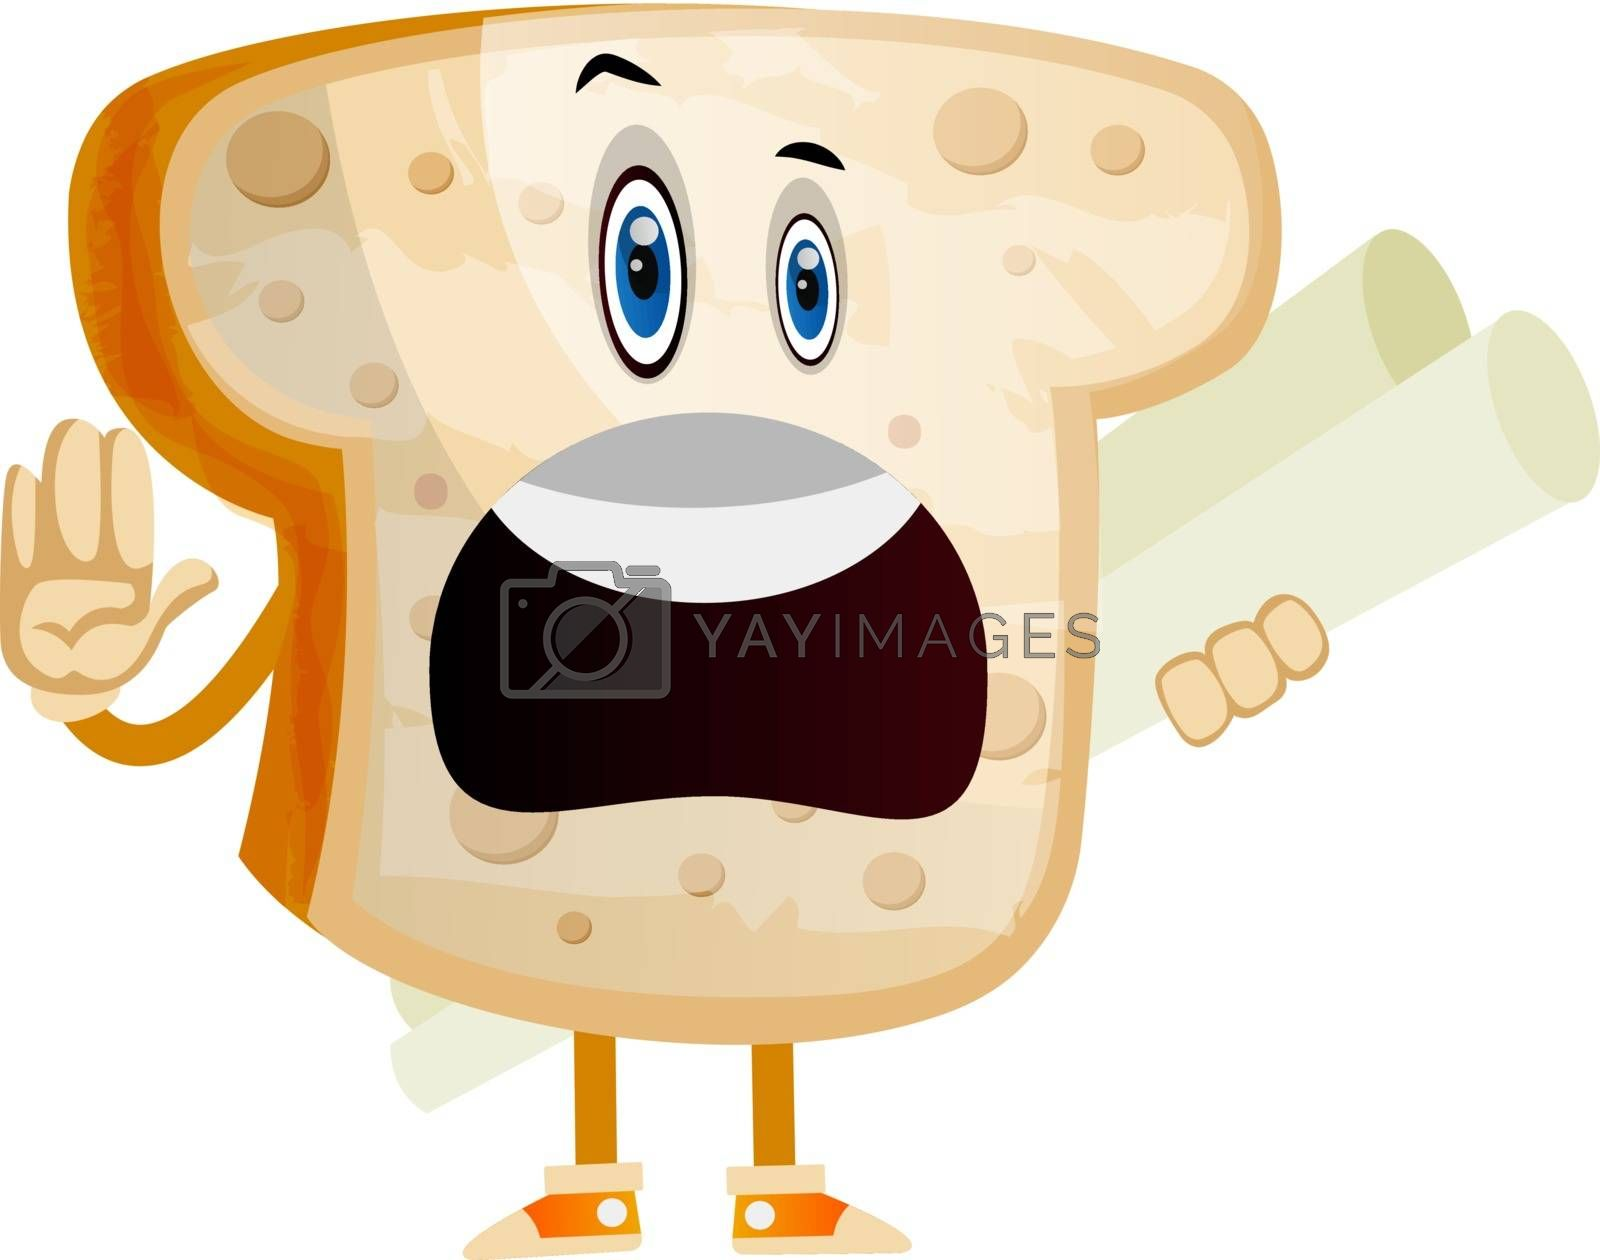 Royalty free image of Employed bread illustration vector on white background by Morphart